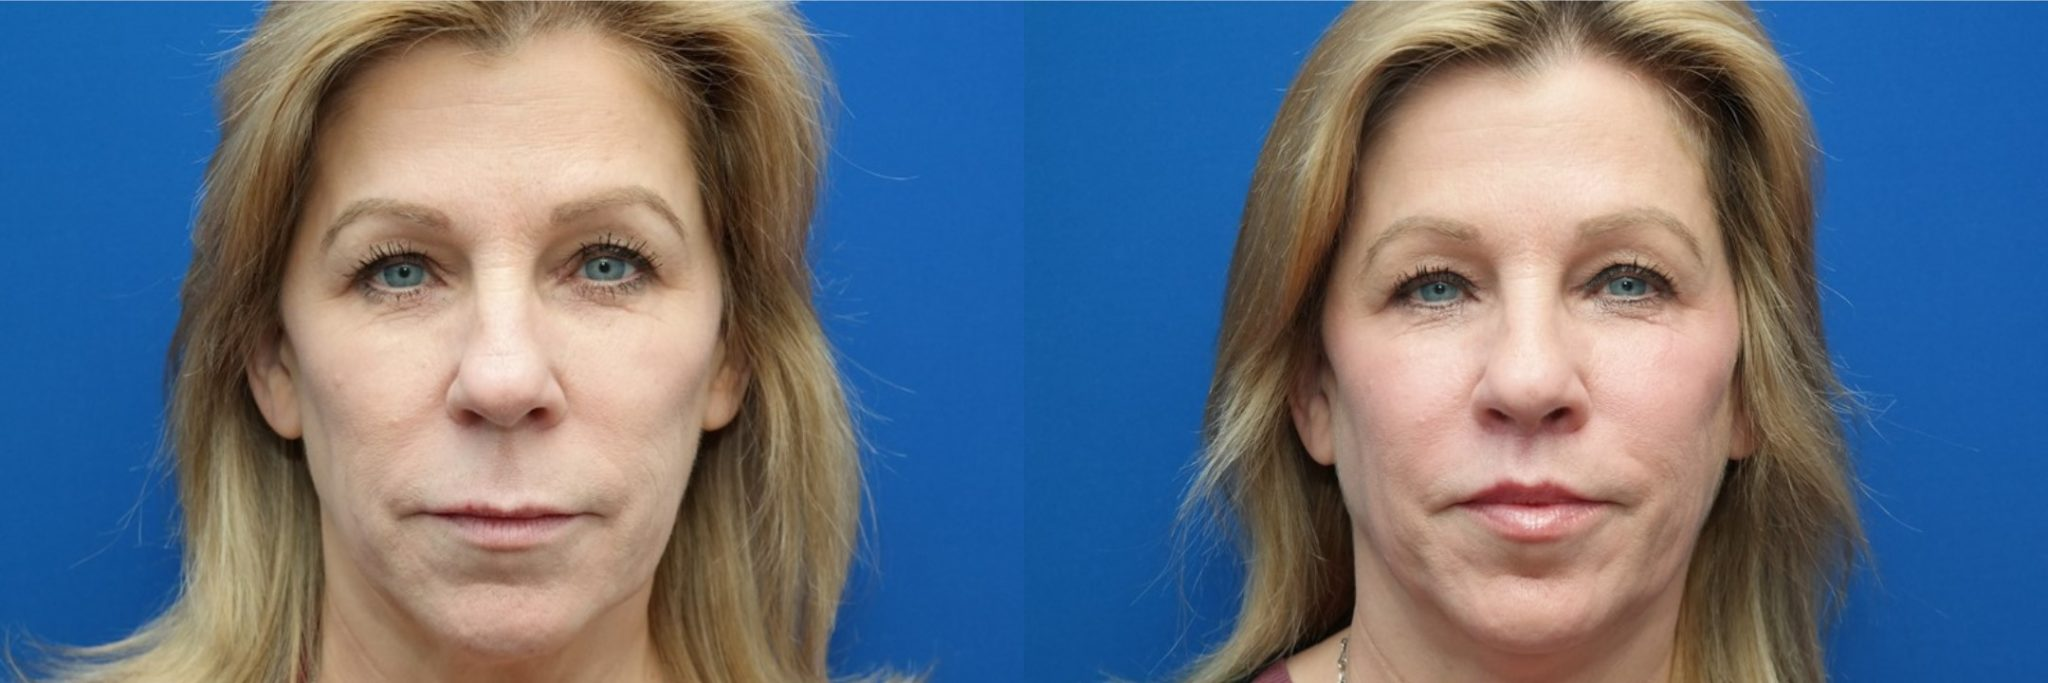 A before and after image set of a woman that underwent a lip lift